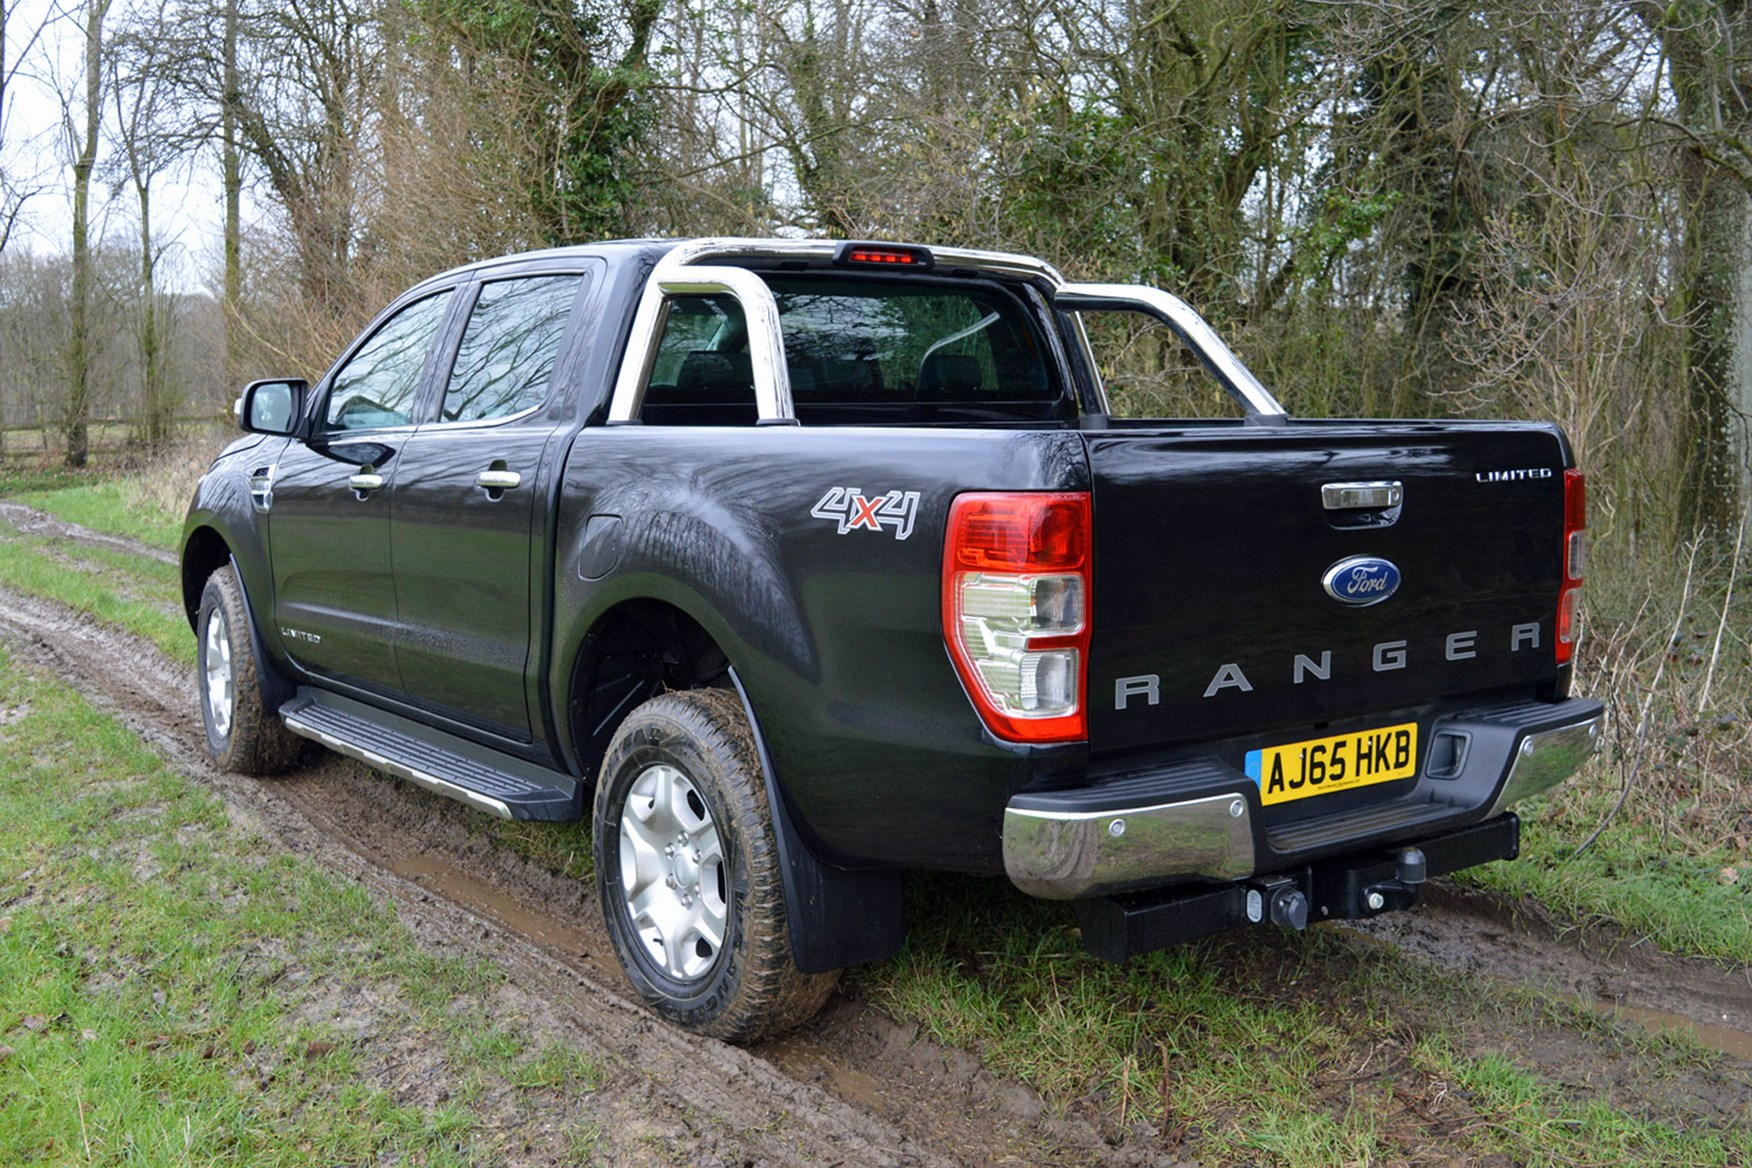 Ford Ranger Limited 3.2 Euro 5 review - rear view, black, on mud